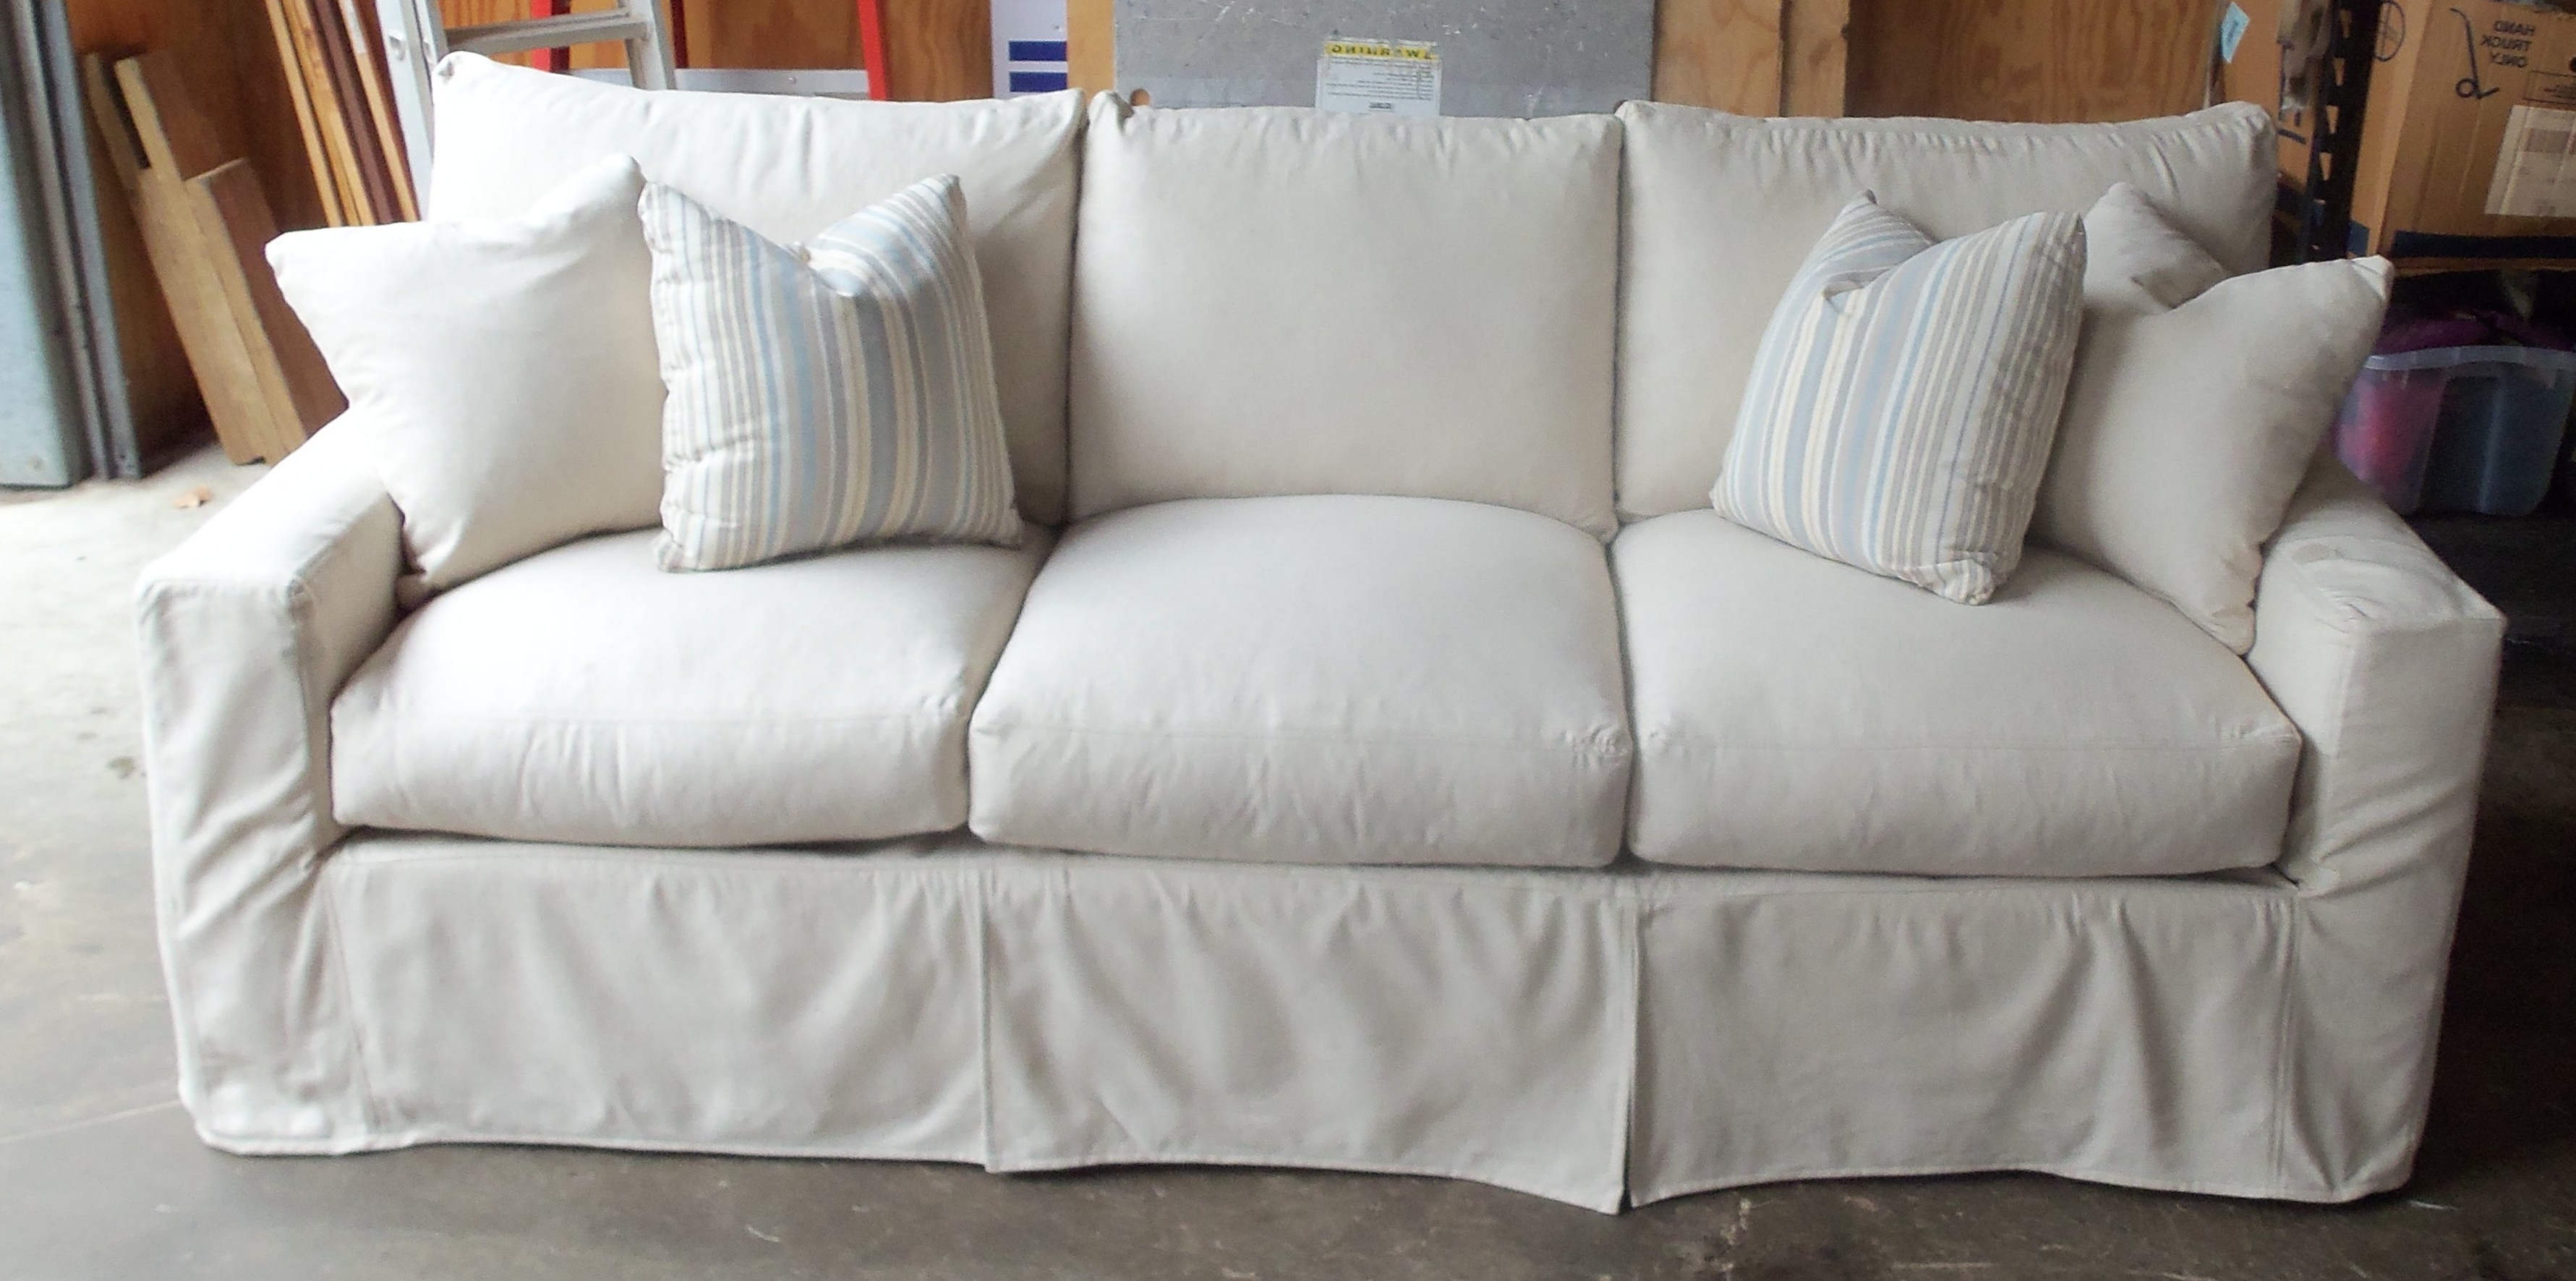 Well Known Furniture: Couch Outlet With Couch Slipcovers Intended For Slipcovers Sofas (View 13 of 15)